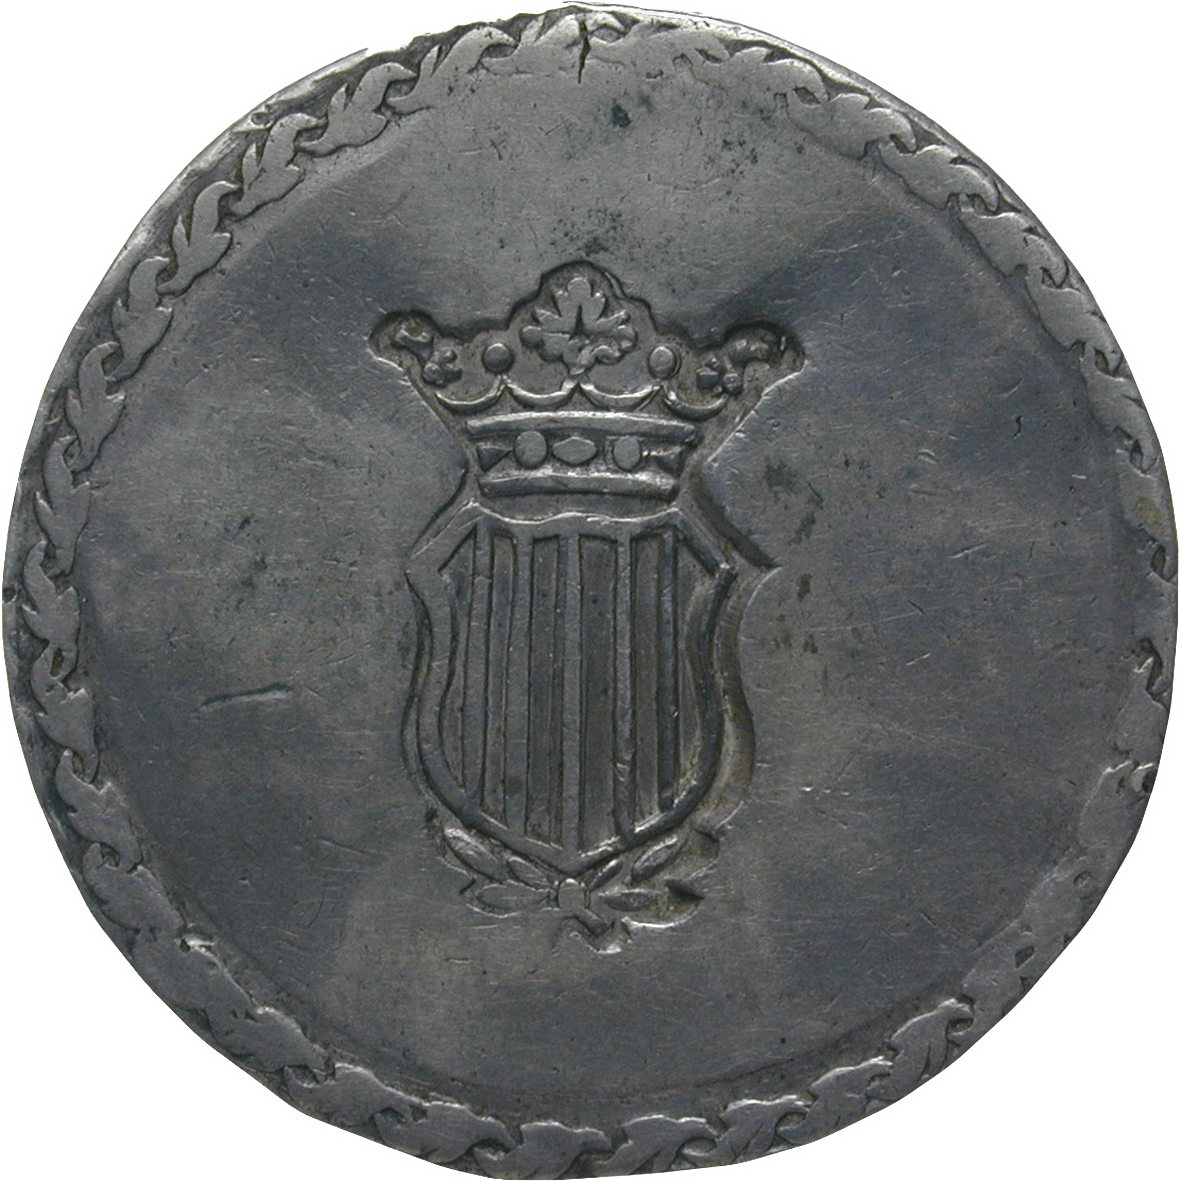 Kingdom of Spain, Ferdinand VII, 5 Pesetas 1809 (obverse)